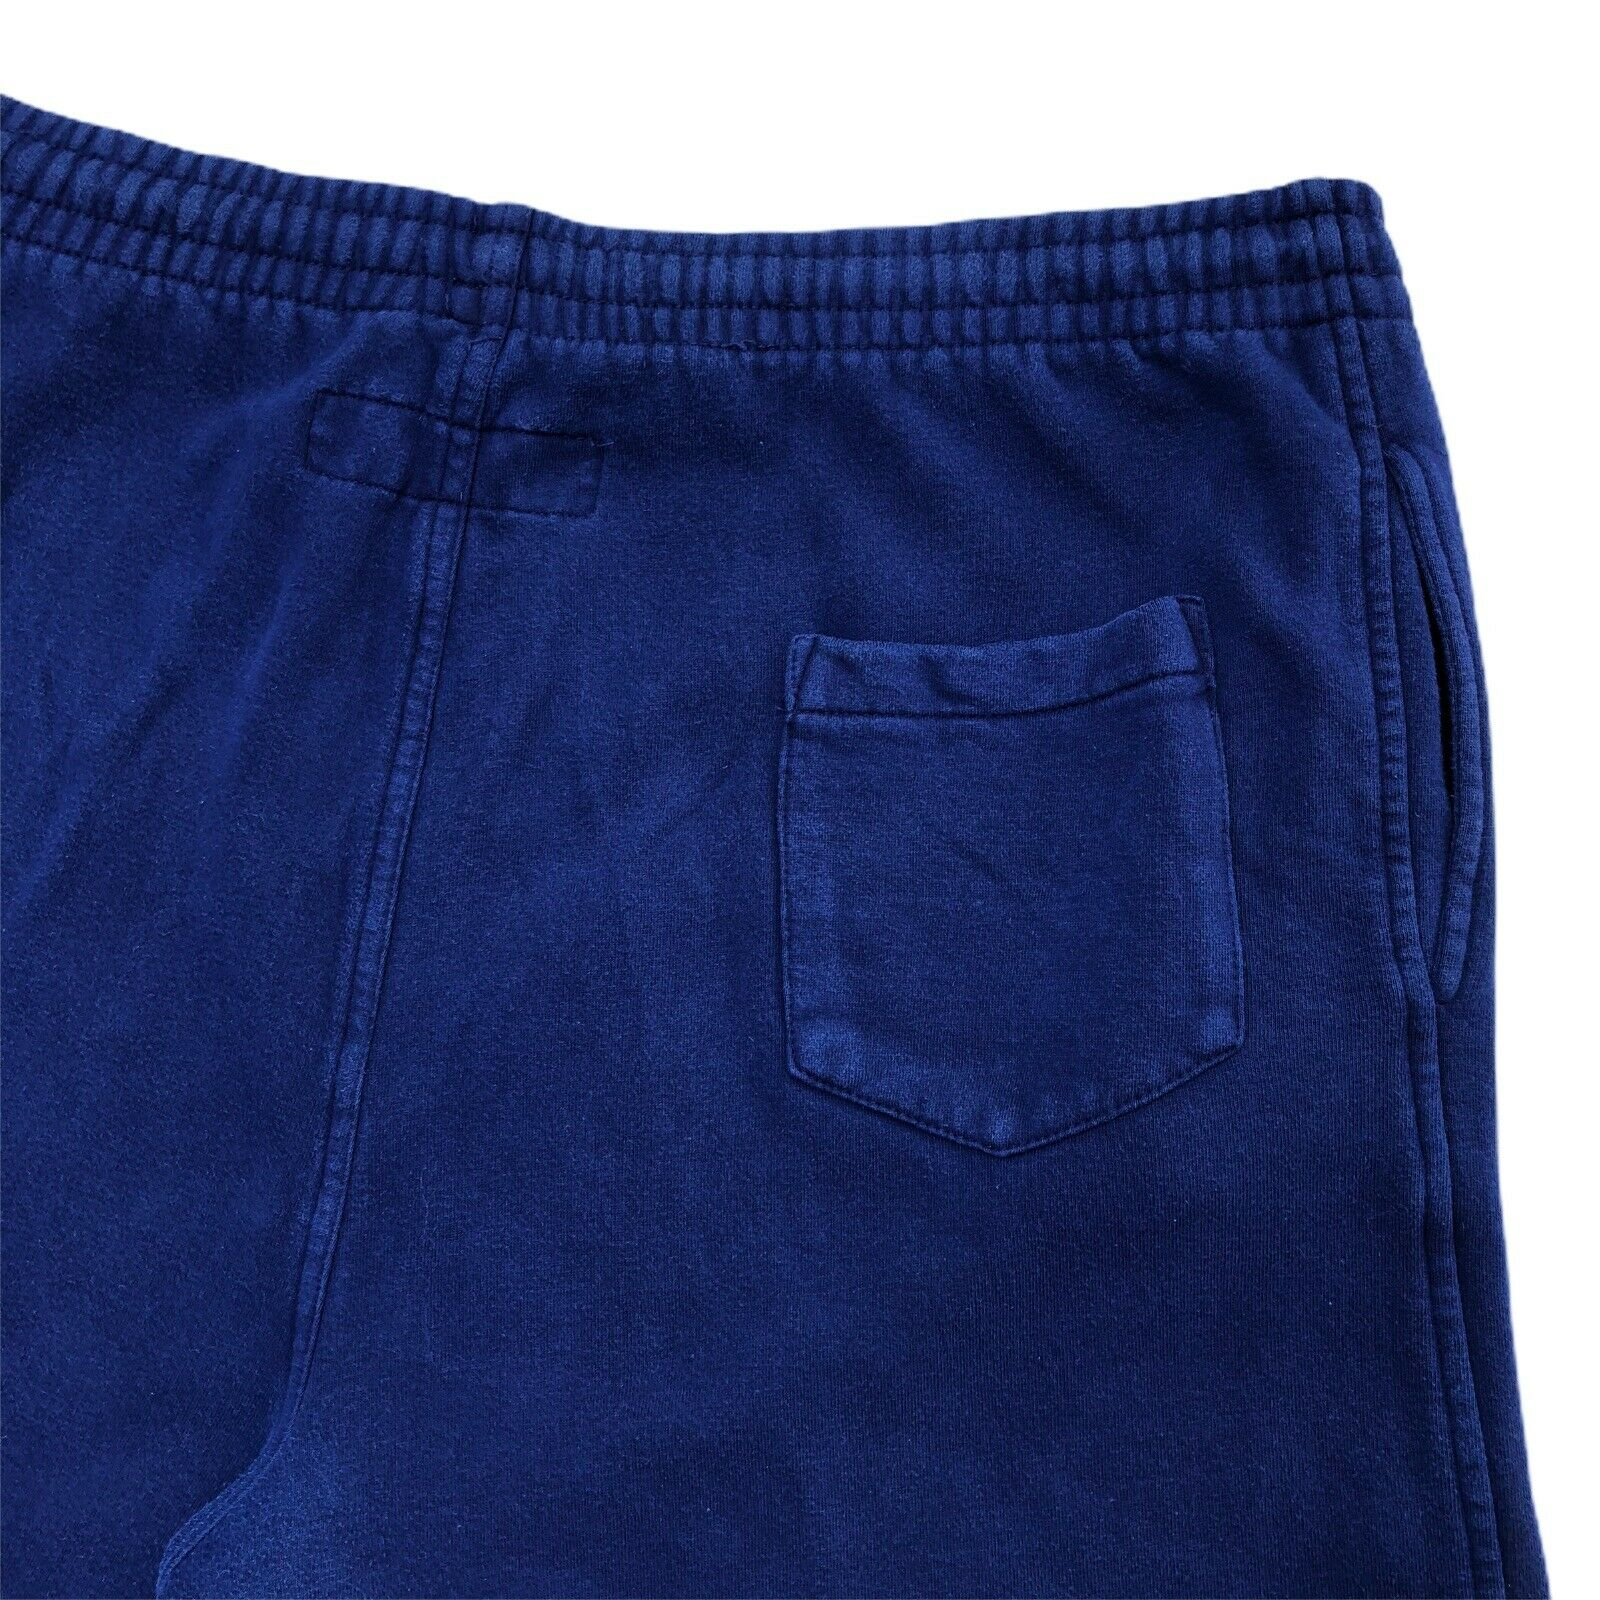 Vintage 90s B.U.M. Equipment Shorts navy blue Swe… - image 4